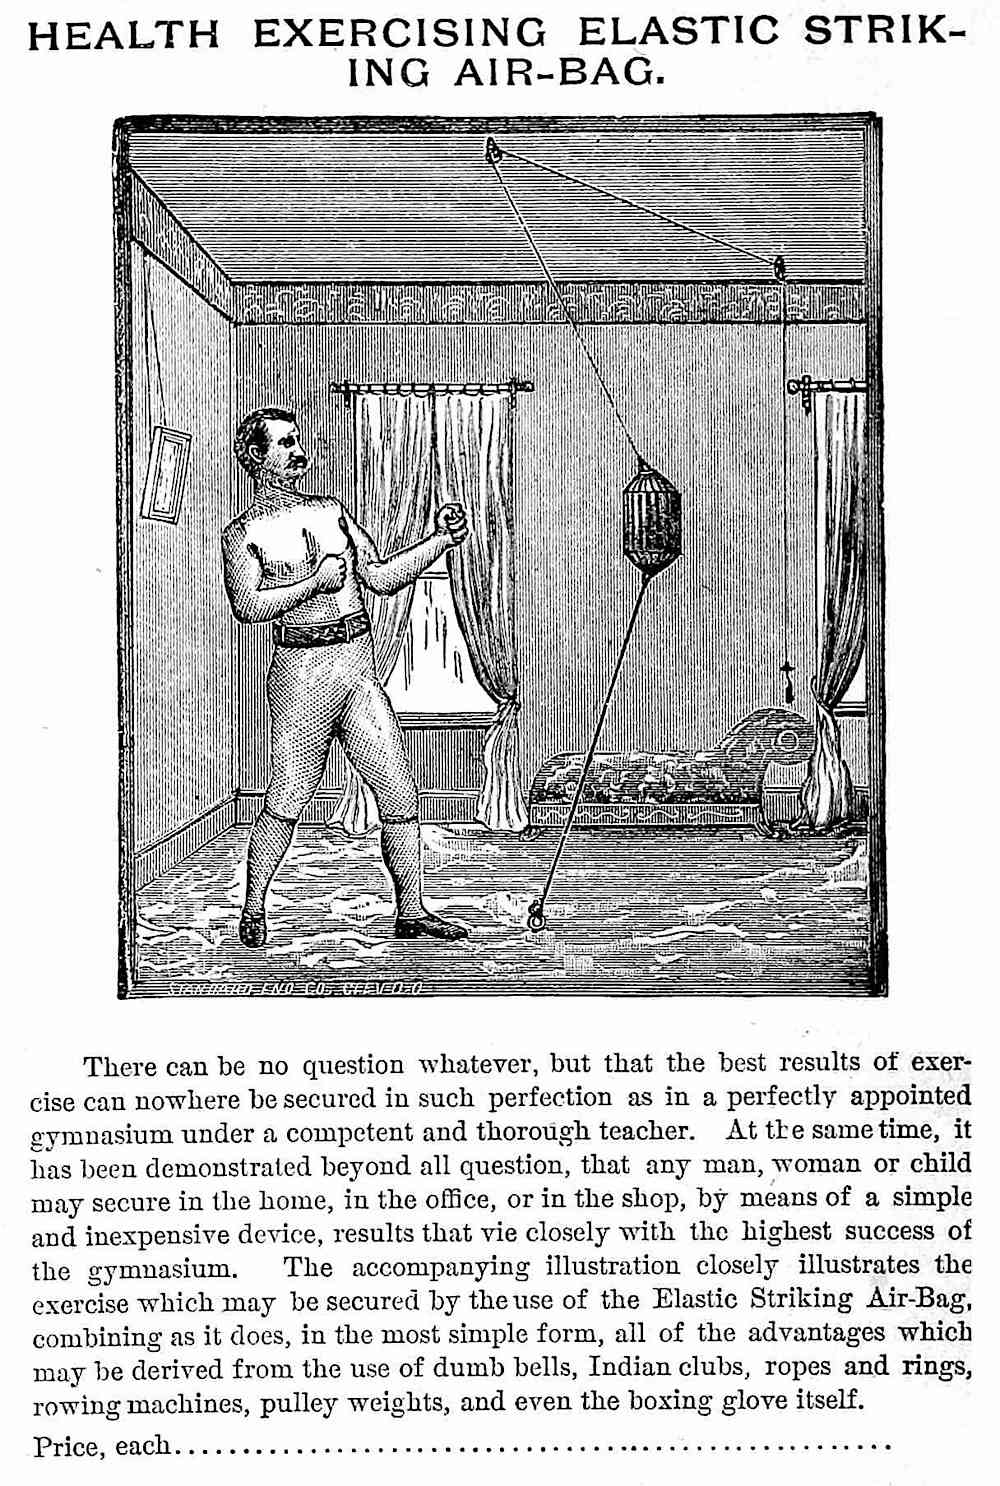 an 1889 personal home punching bag, illustration with text description